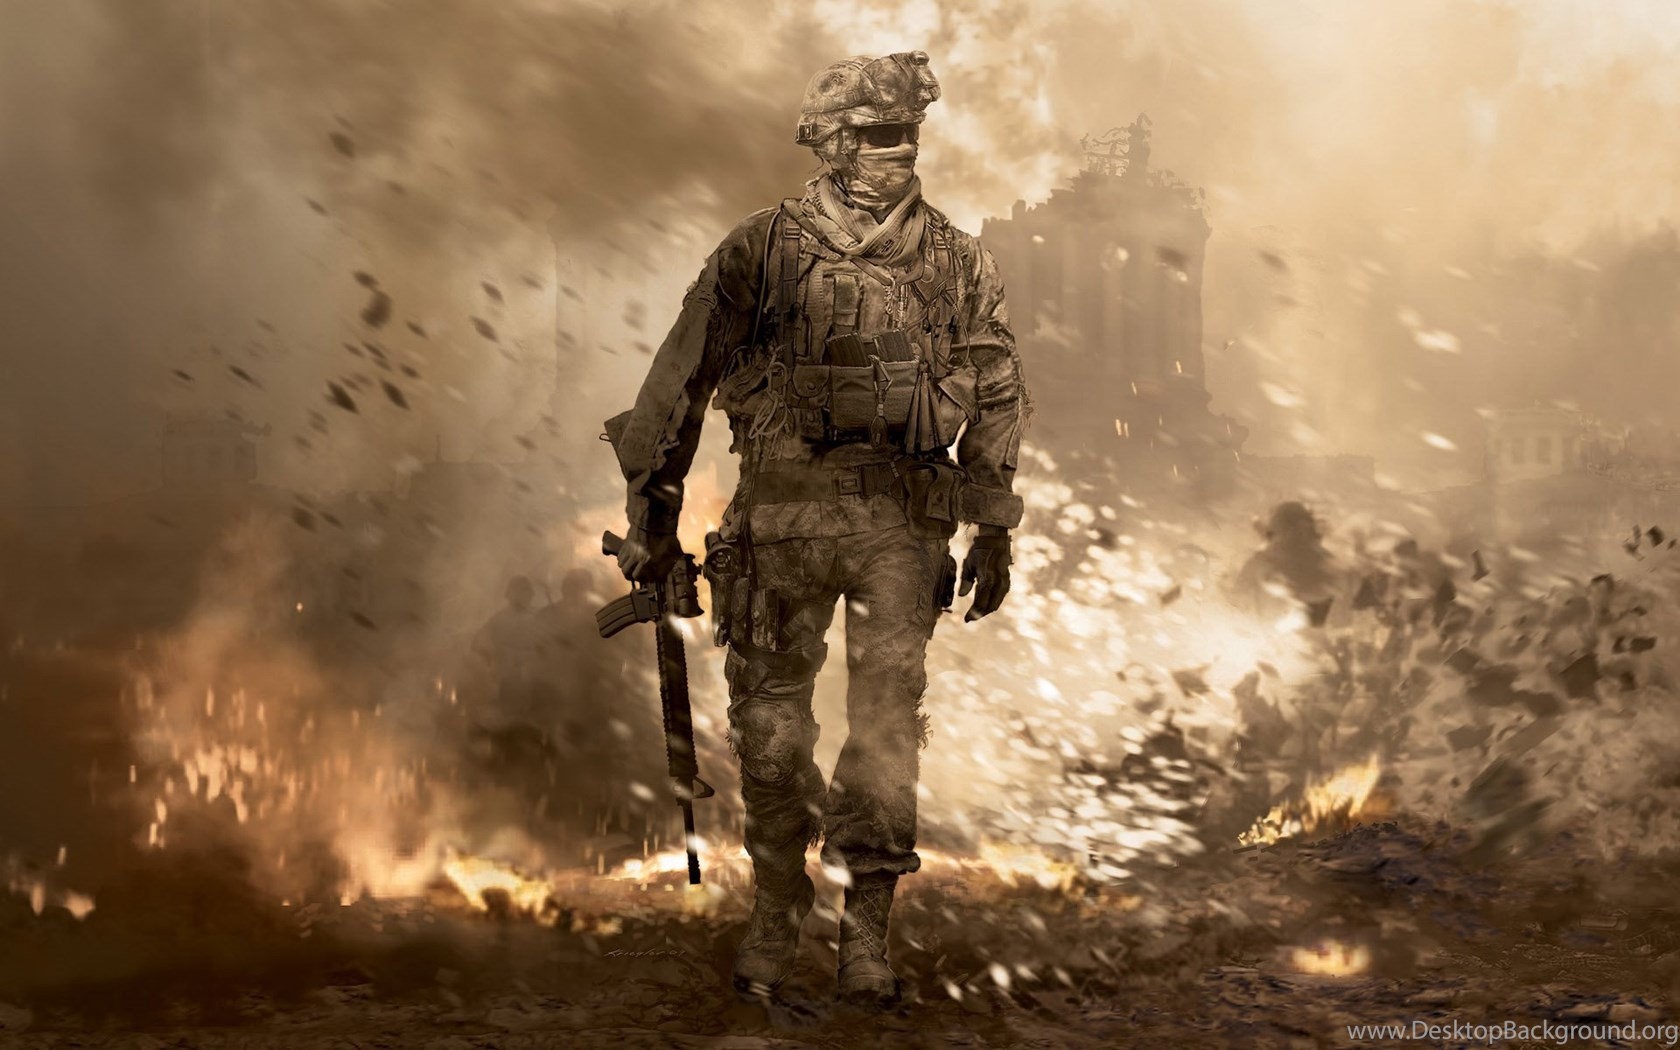 Wallpapers Call Of Duty Call Of Duty 4 Modern Warfare Games Image